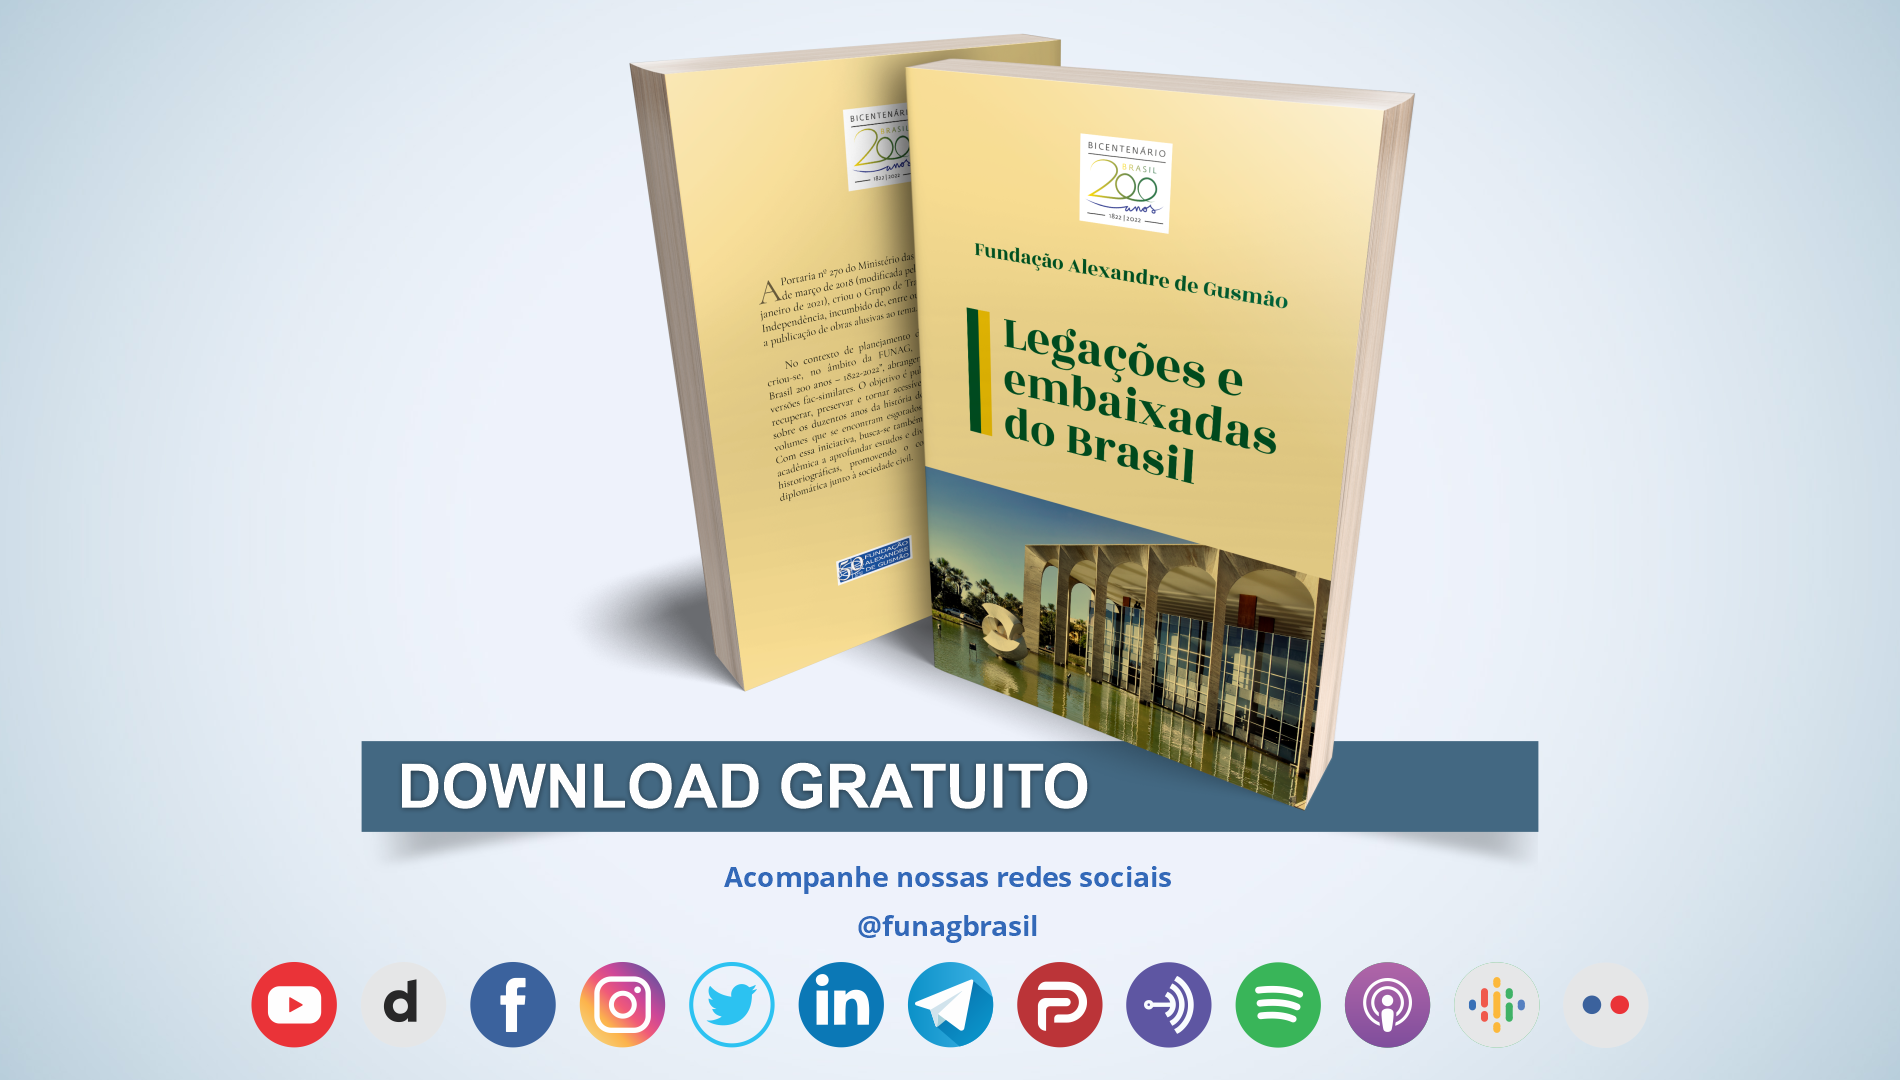 Launch of book and search engine for Brazilian legations and embassies